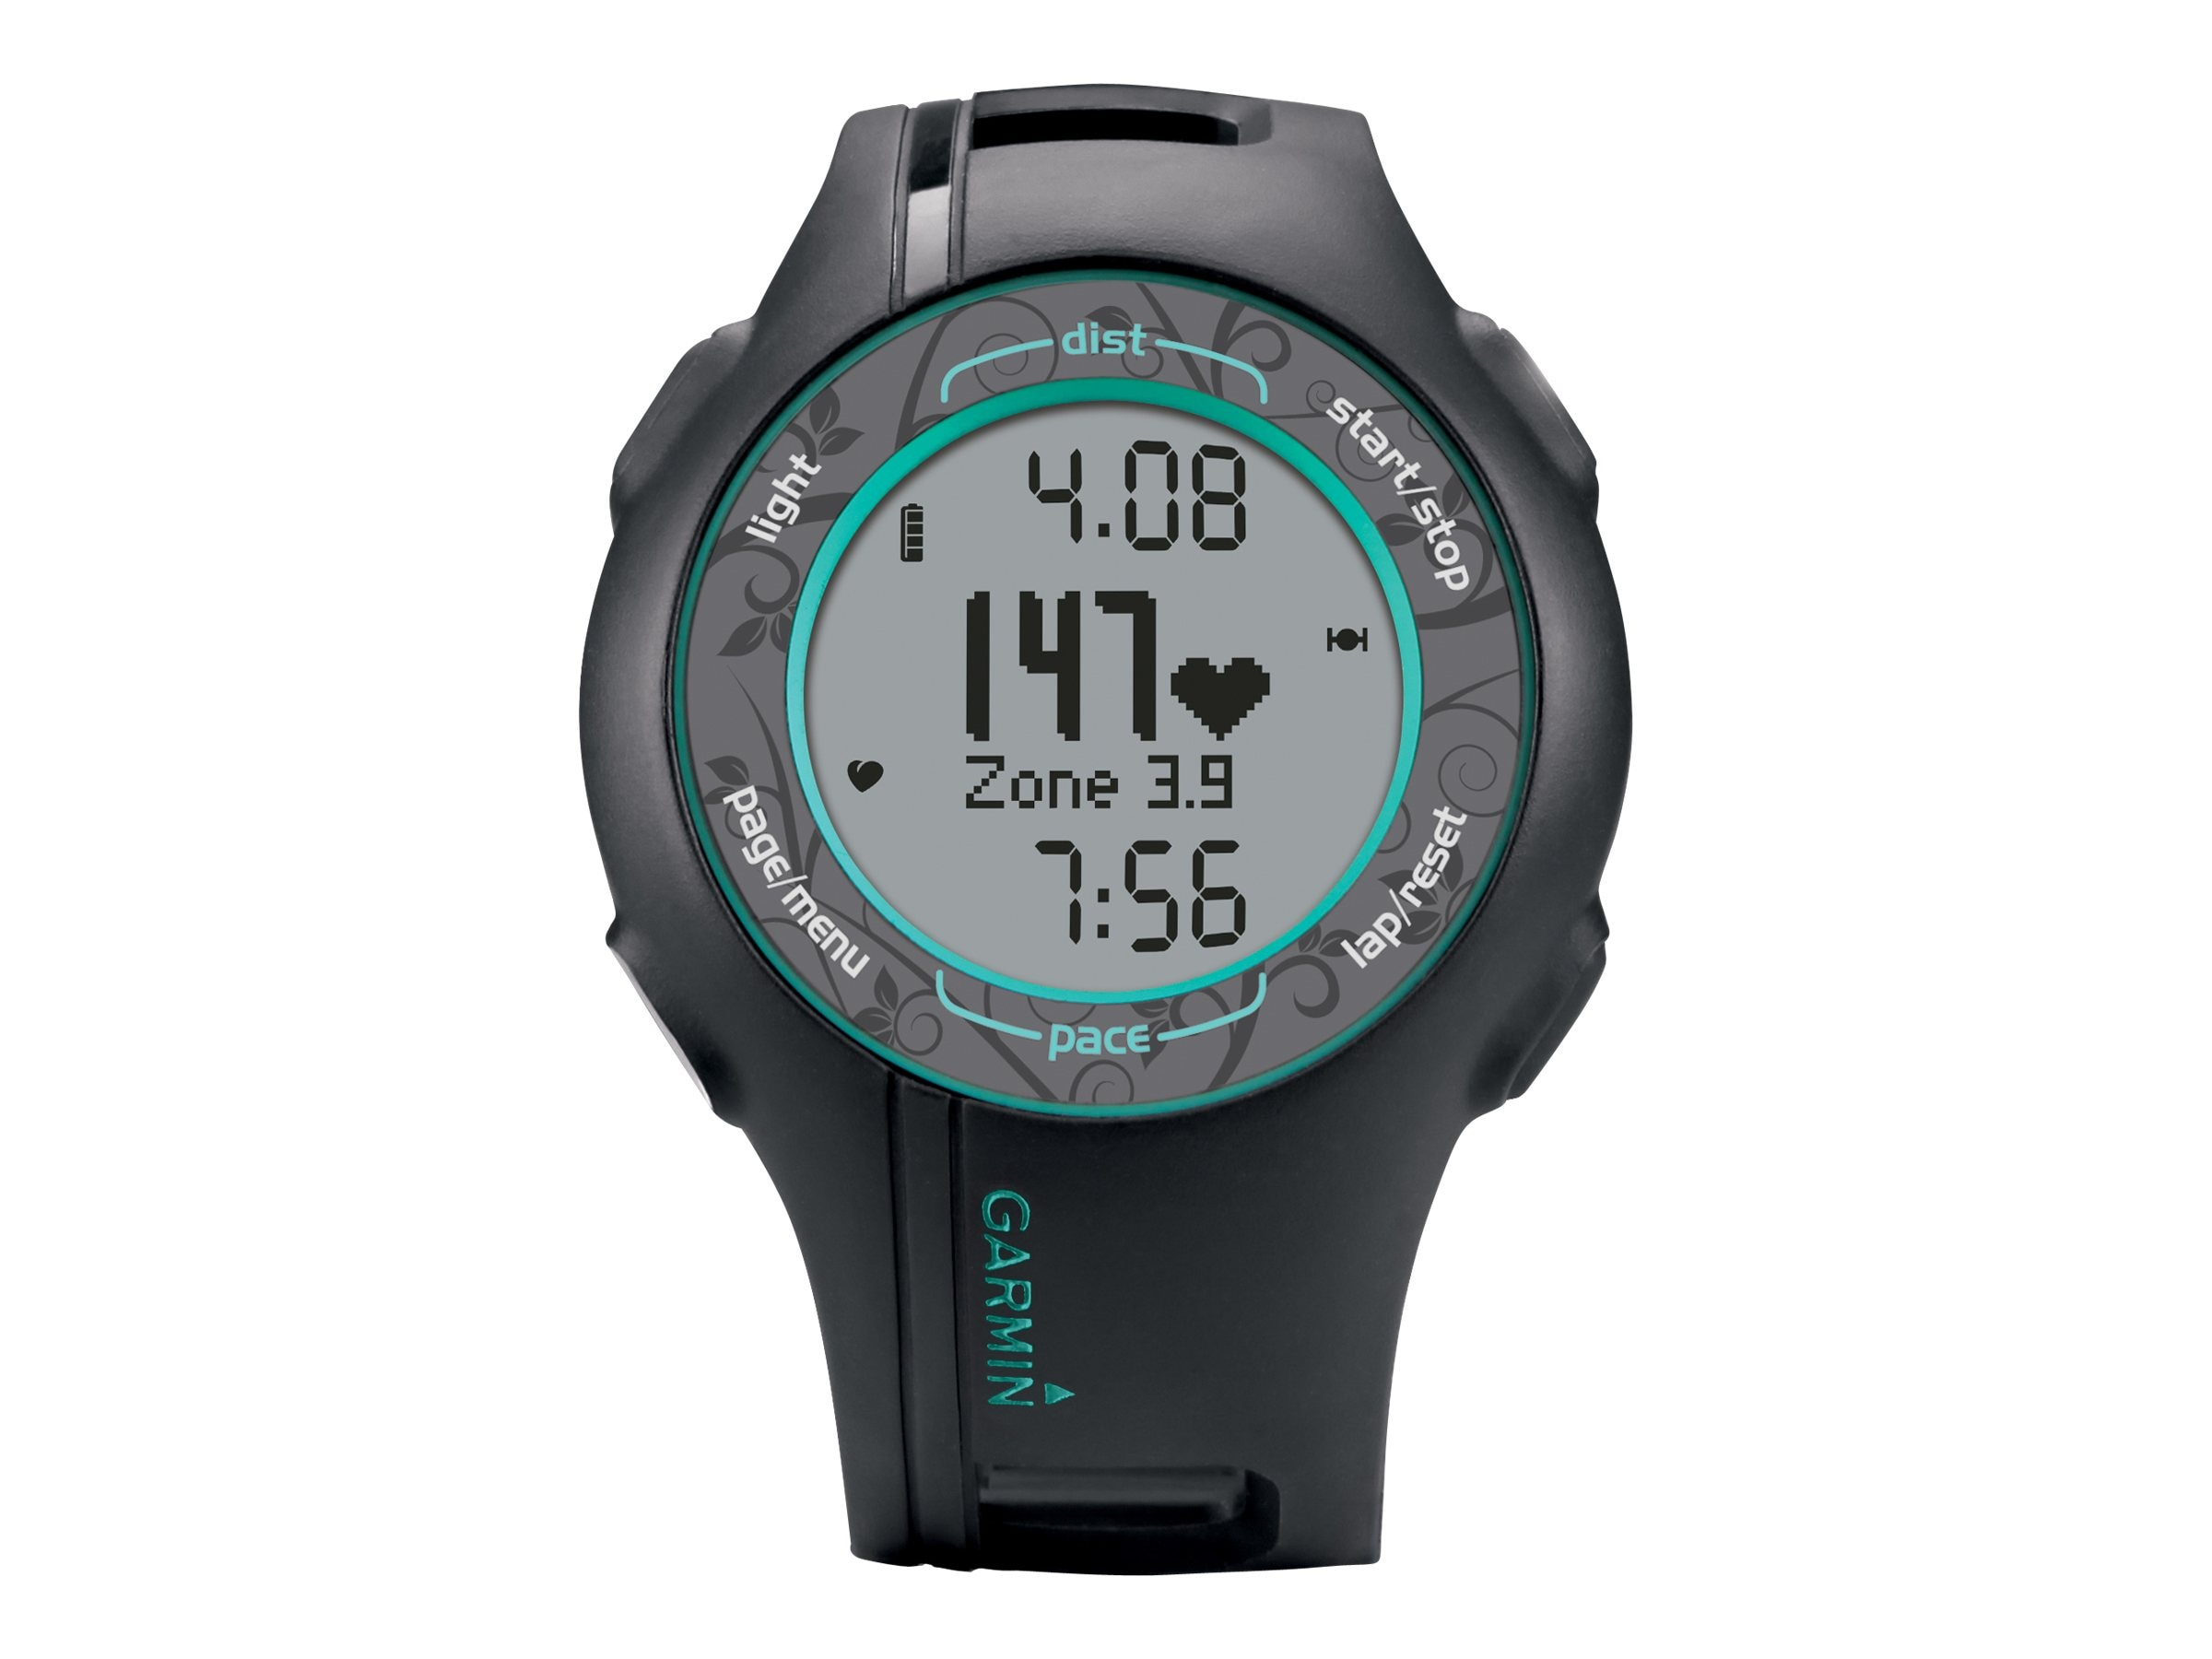 Garmin Forerunner 210 With Heart Rate Monitor, Teal, 010-00863-38, 16146231, Wearable Technology